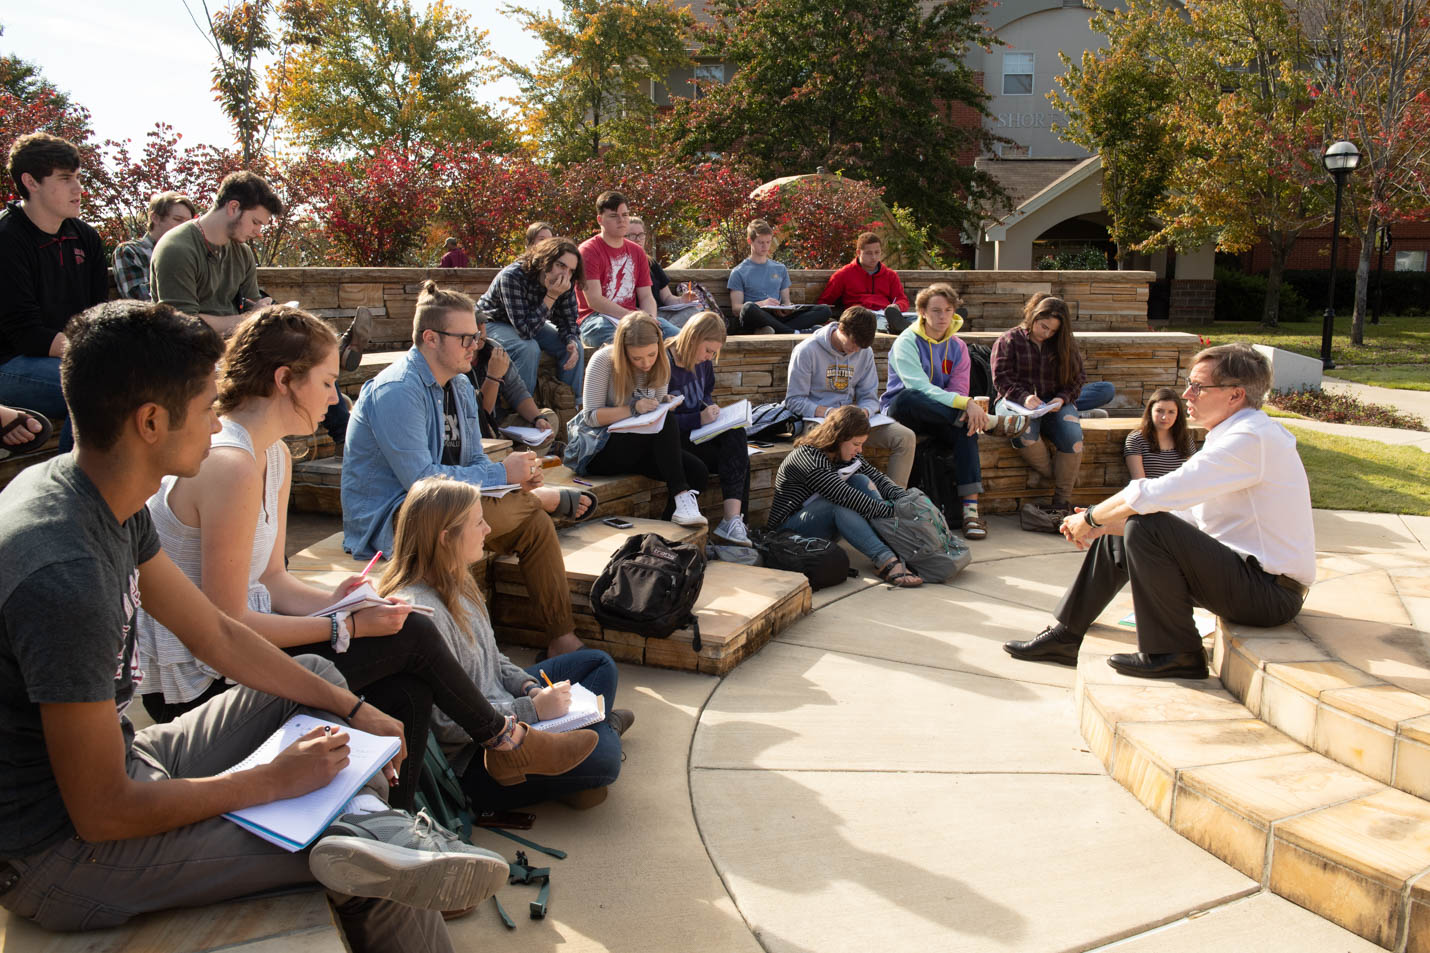 This is a photo of students in the outdoor classroom.